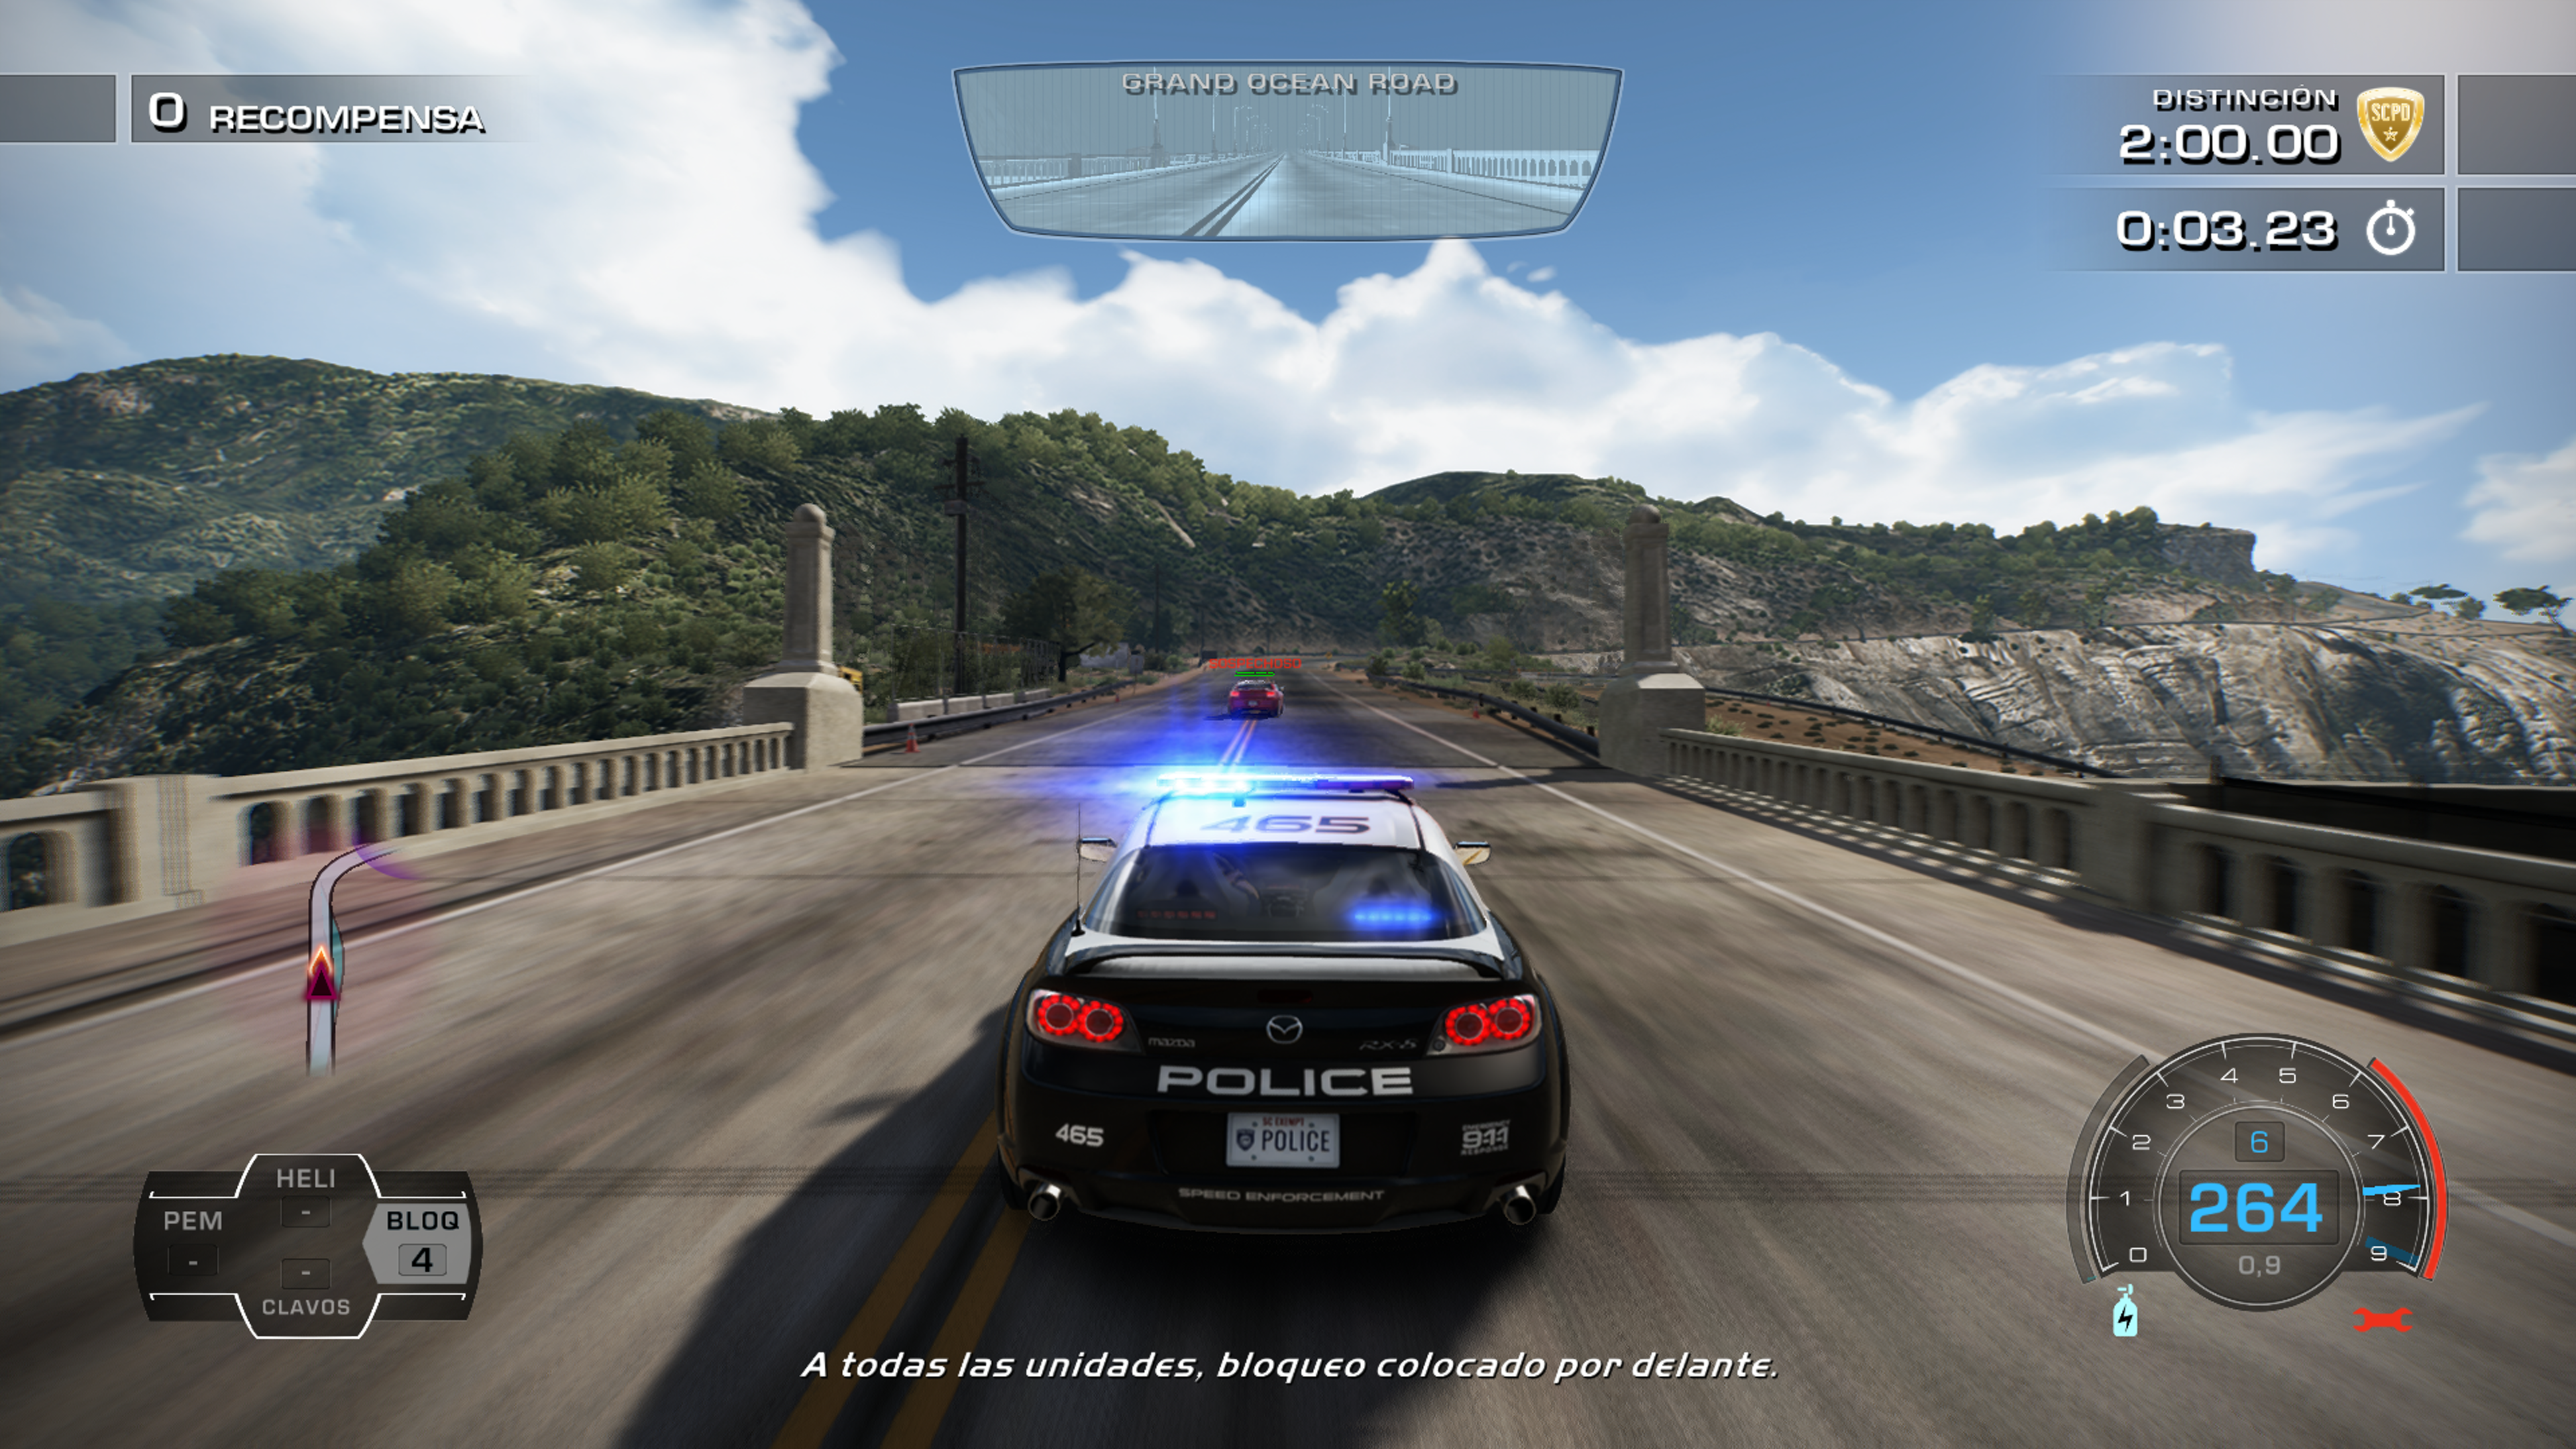 qhd84ua7mc_Need For Speed™ Hot Pursuit Remastered 2020-11-21 23-43-34.png